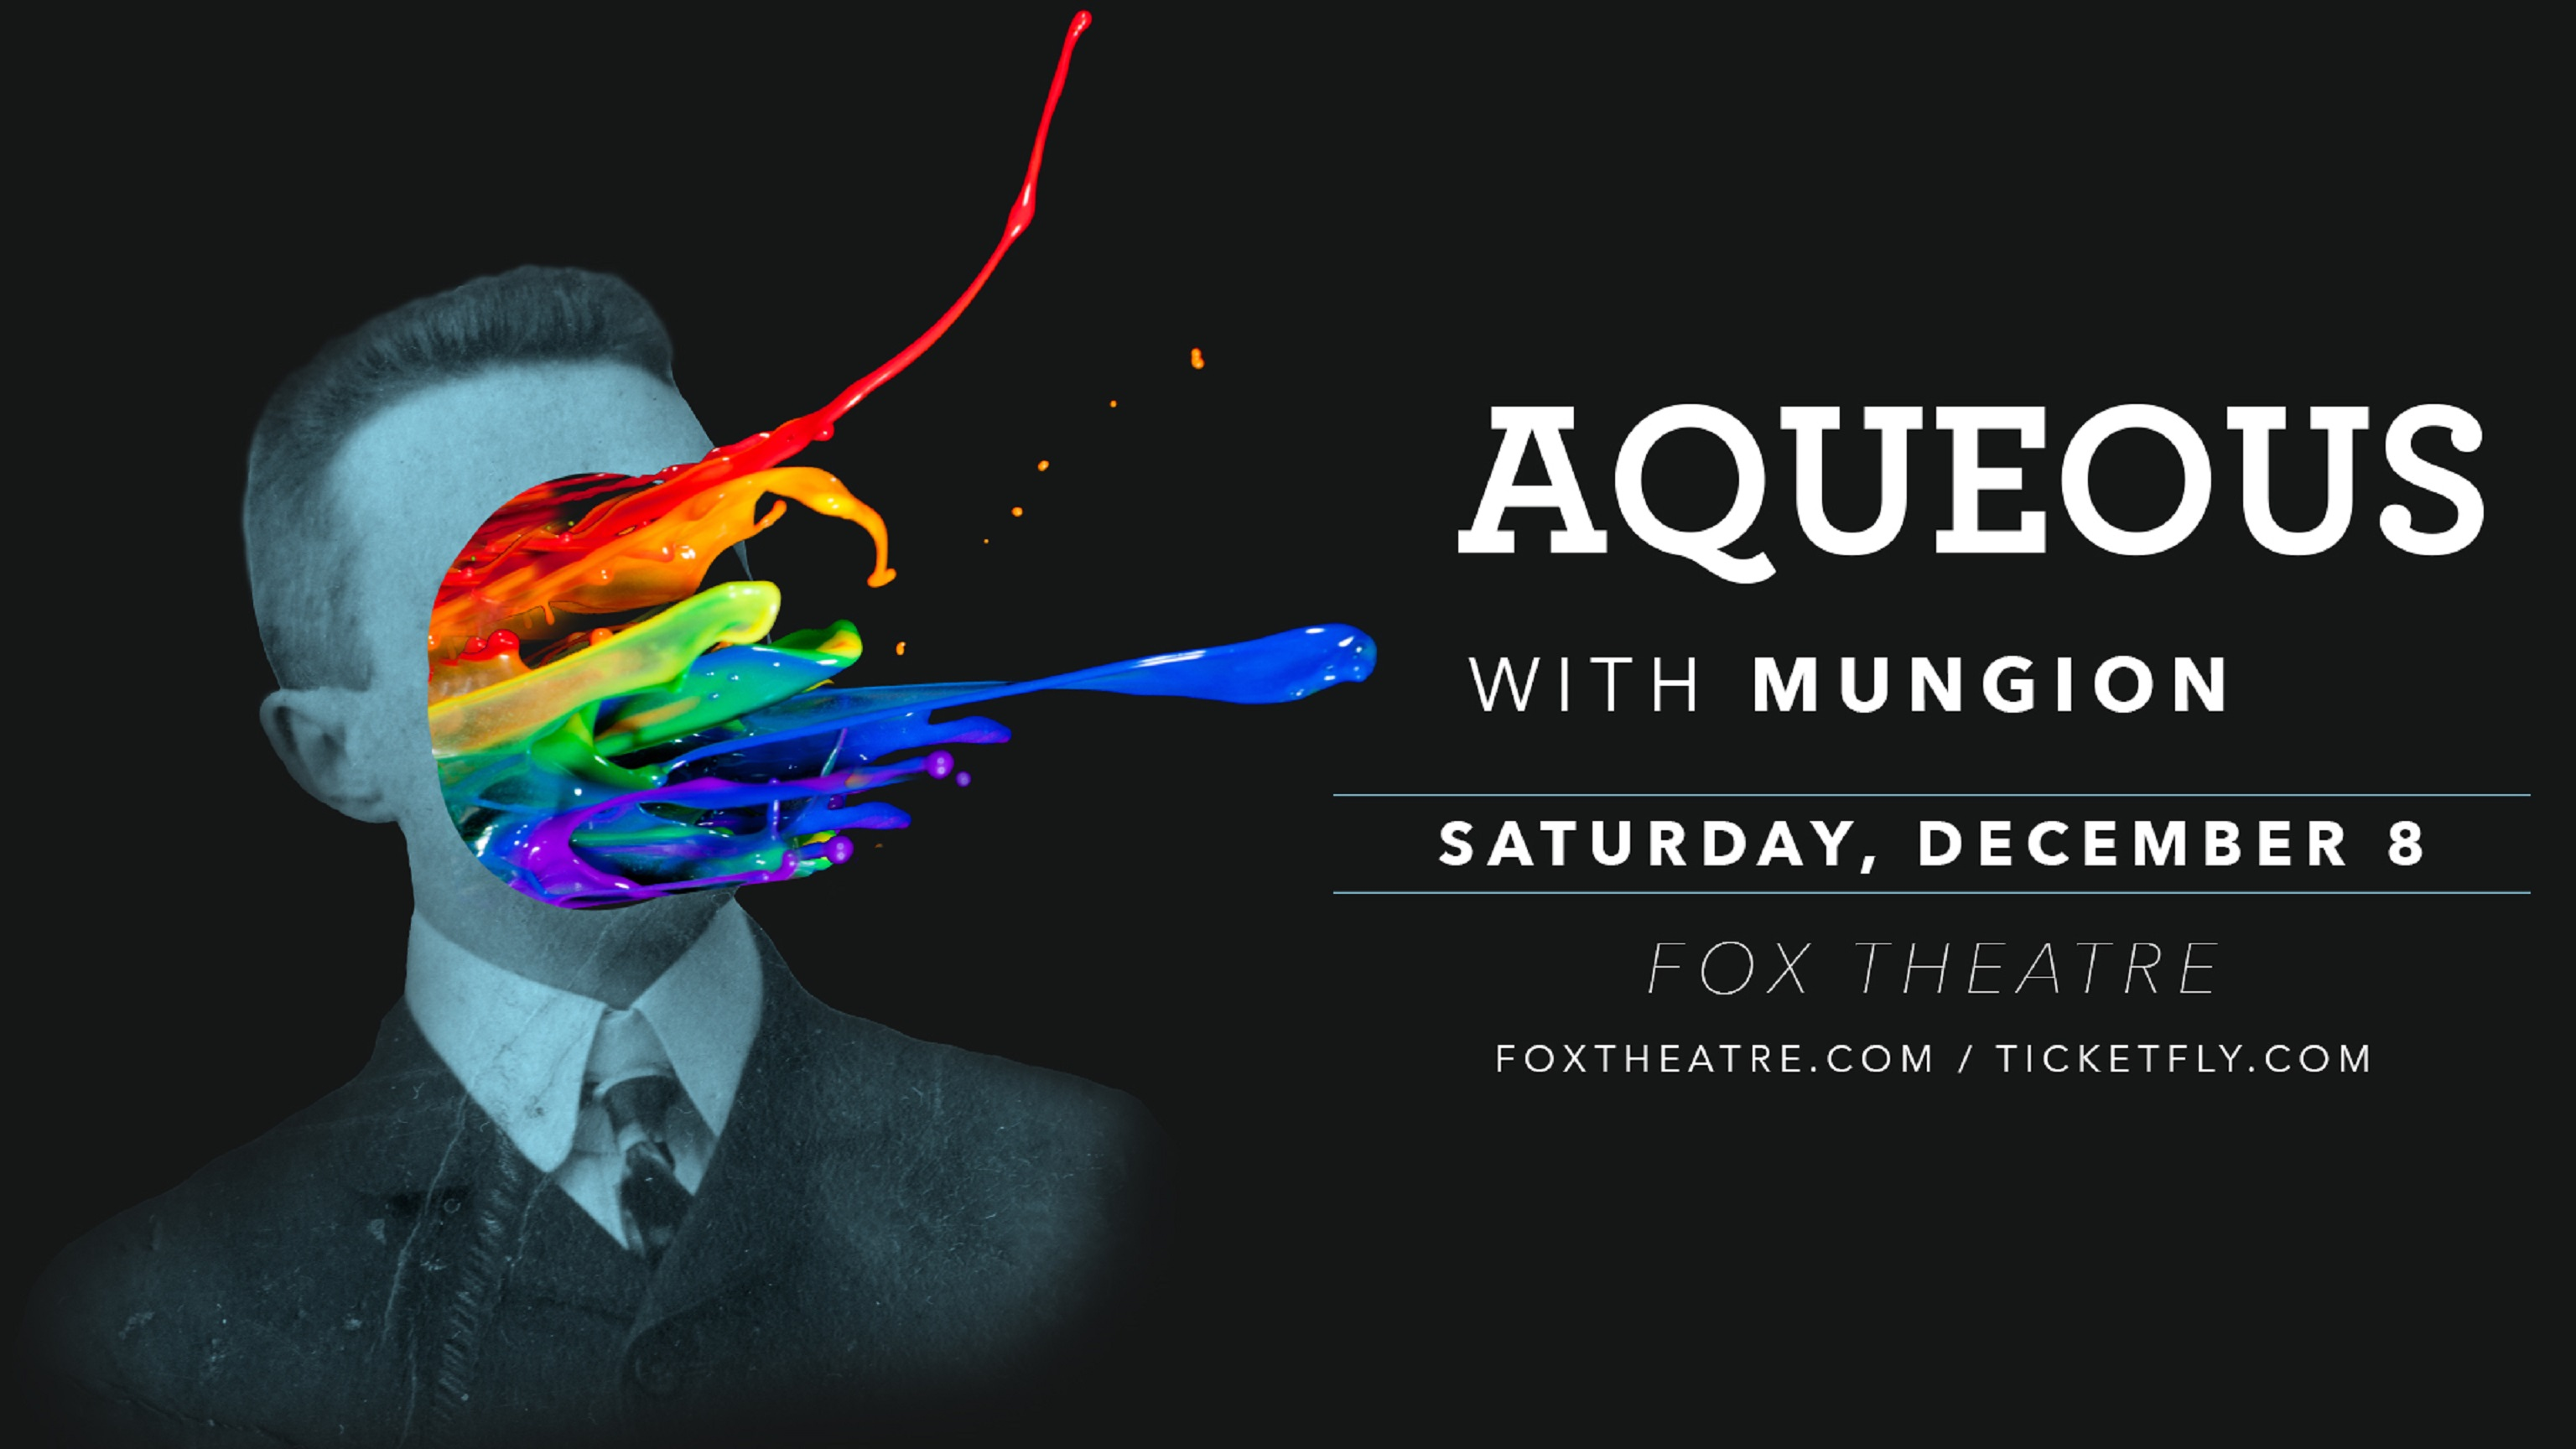 Aqueous @ The Fox Theatre | 12/8/18 | Preview